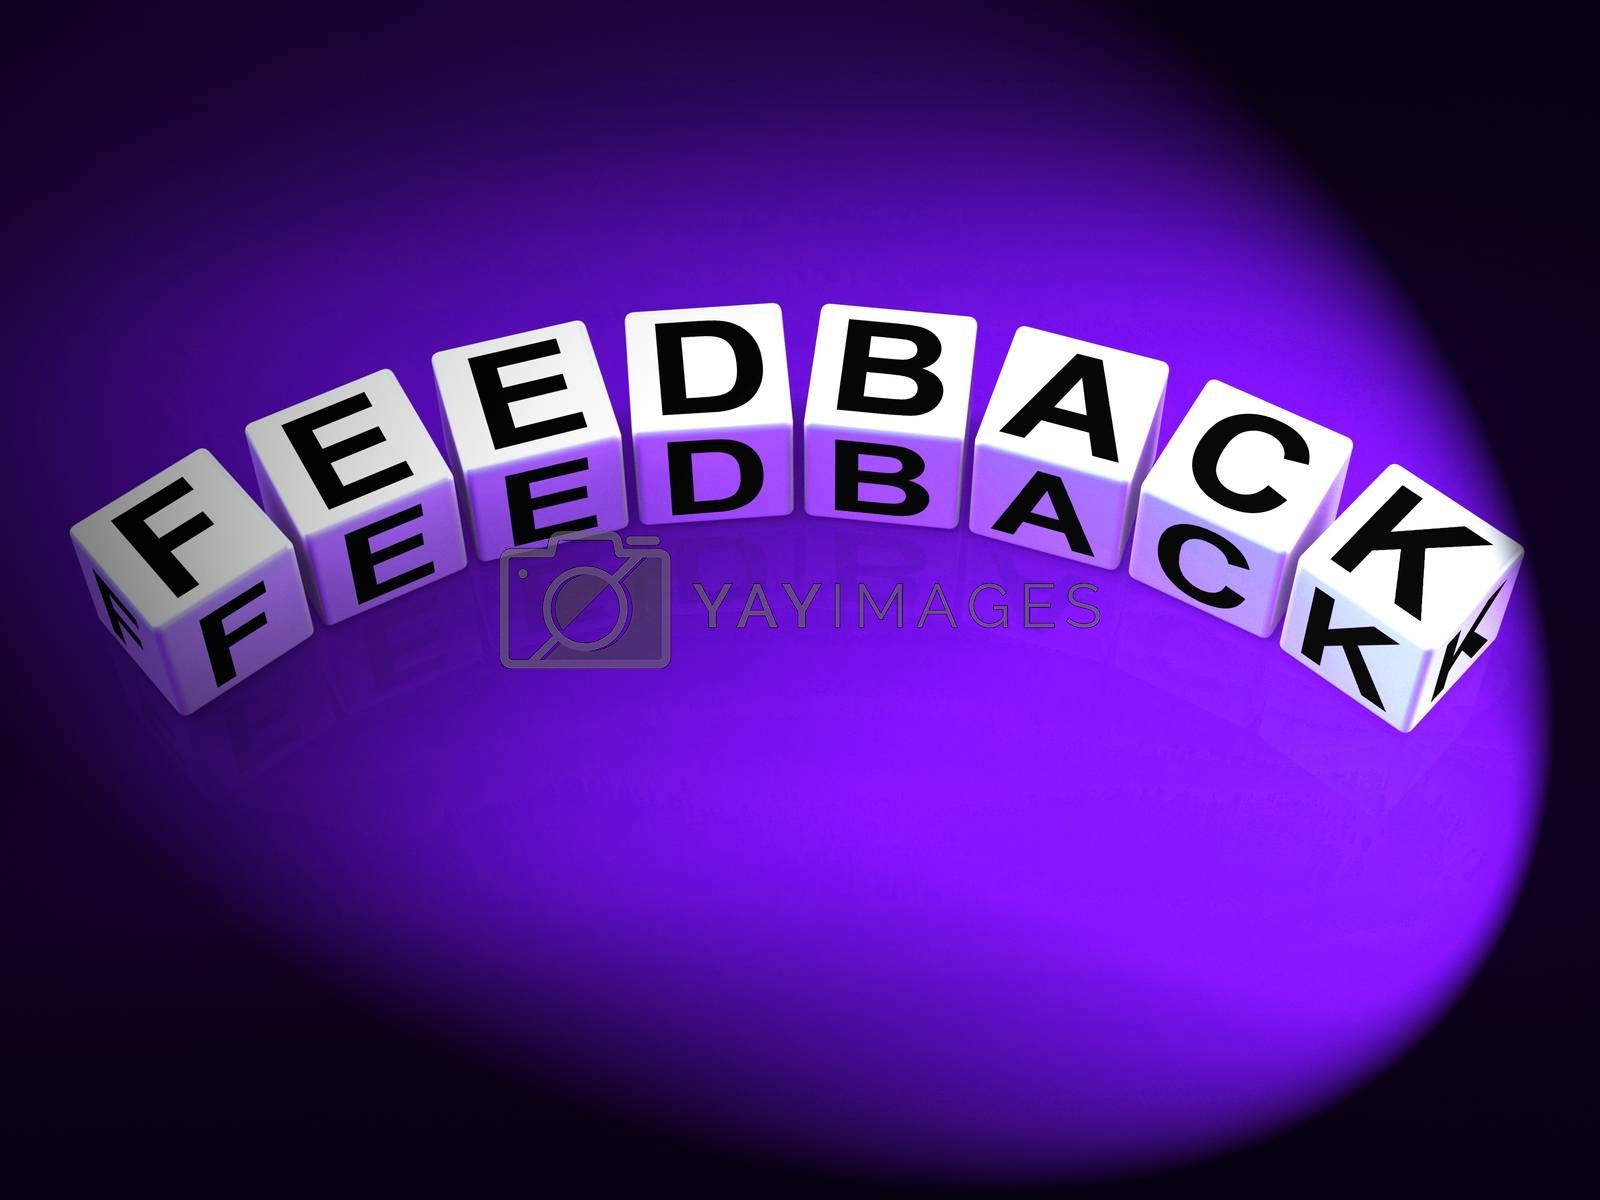 Feedback Dice Means Comment Evaluate and Review by stuartmiles